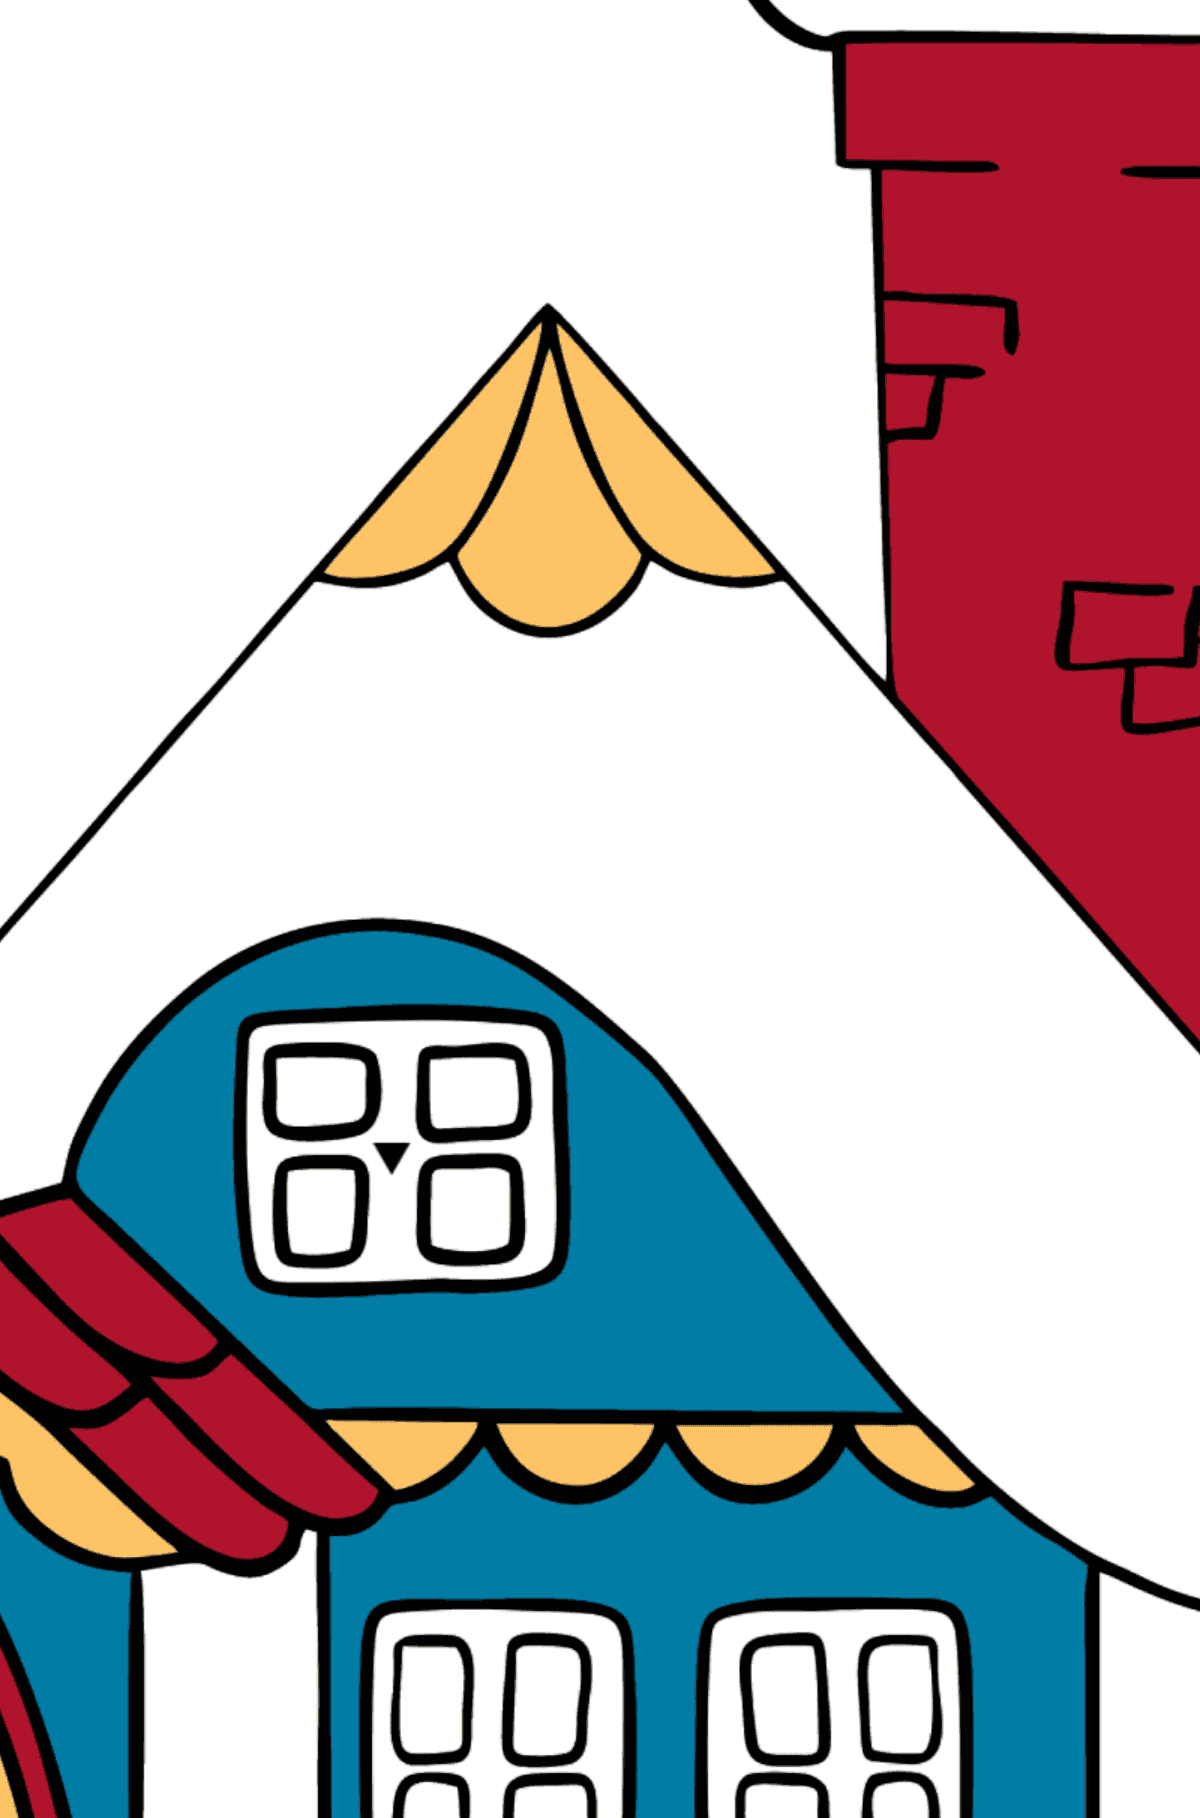 Simple Coloring Page - A Wonderful House - Coloring by Symbols for Kids